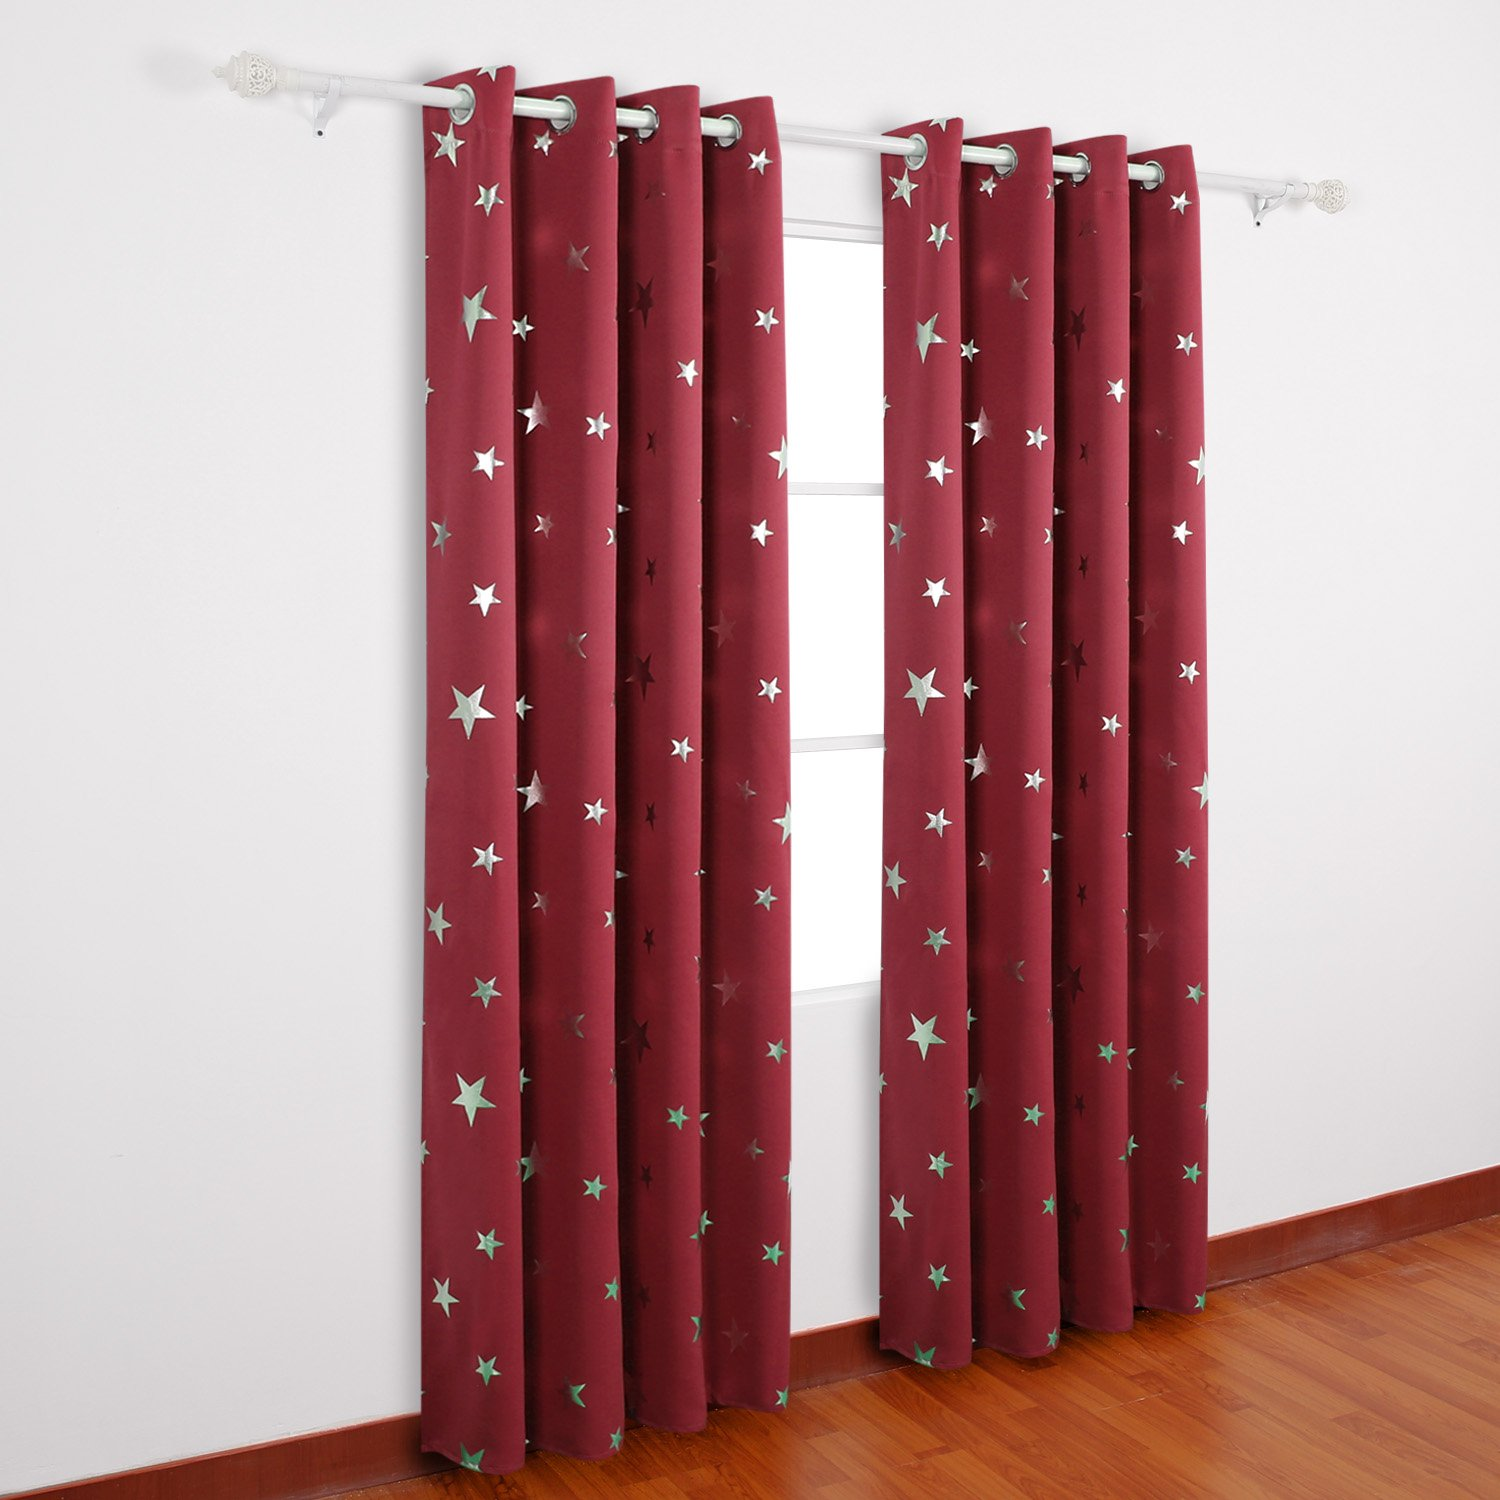 Red Deconovo Solid Thermal Insulated Blackout Curtains with Silver Star Pattern